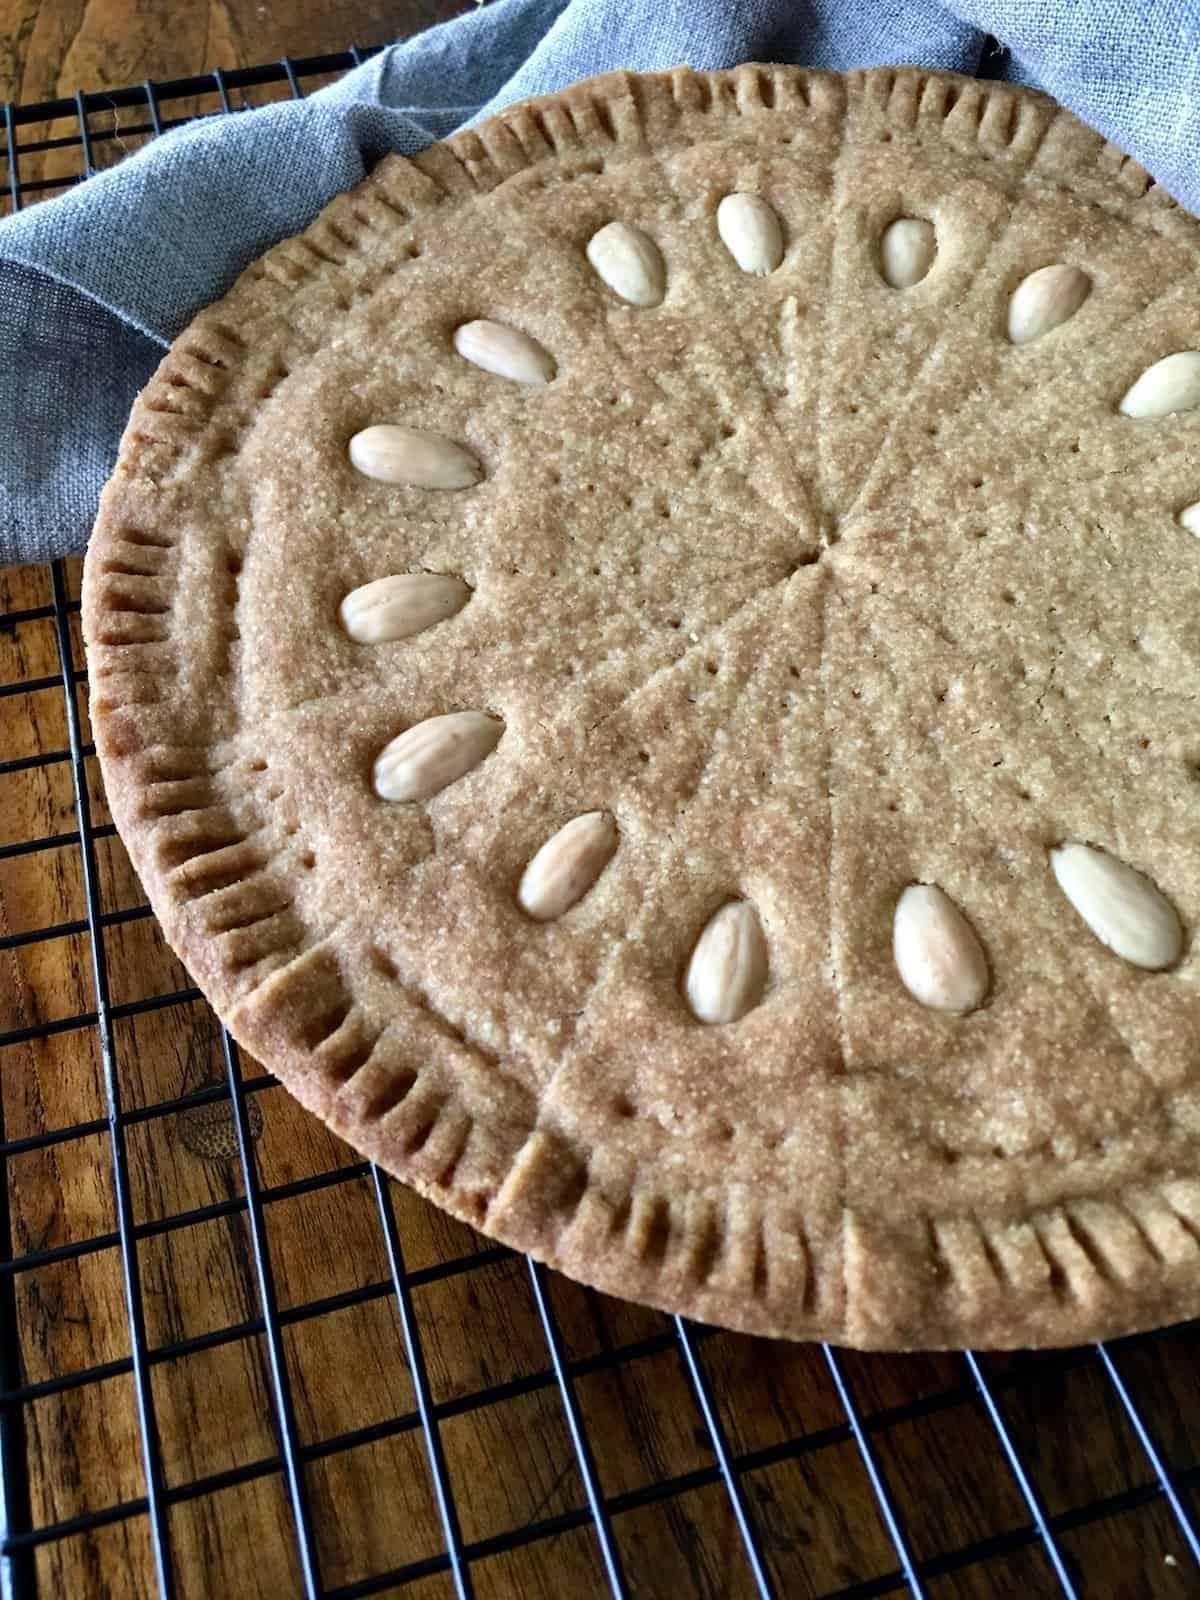 Scottish shortbread petticoat tails are SO buttery and delicious! Here's how Gran made her classic traditional Scotch shortbread. #petticoattails #scottishshortbread #shortbreadpetticoattails #petticoattailsshortbread